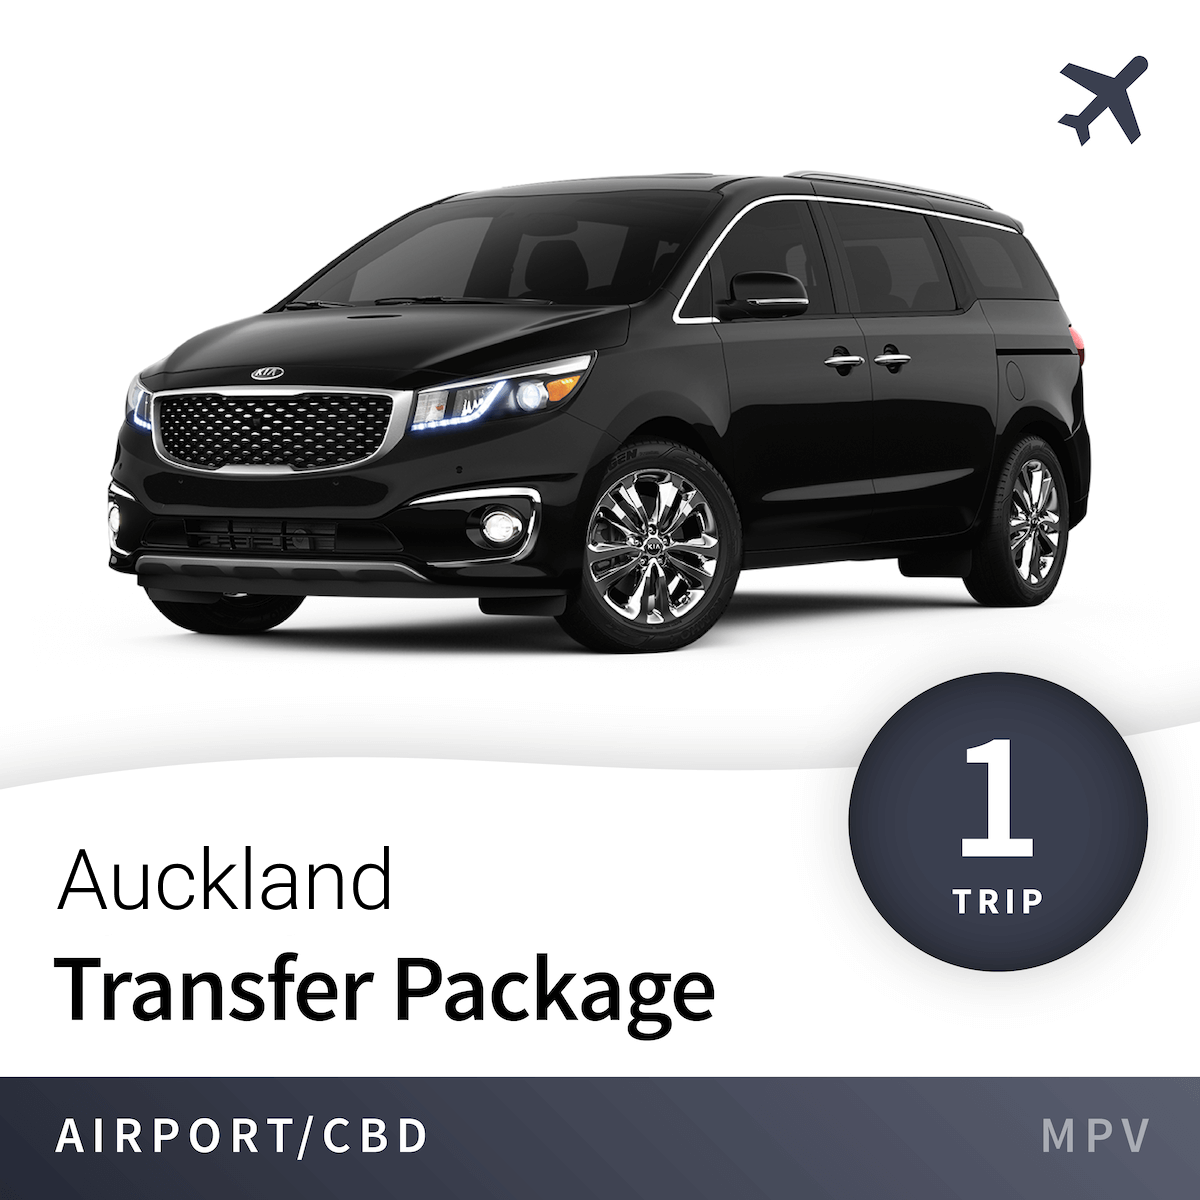 Auckland Airport Transfer Package – MPV (1 Trip) 15